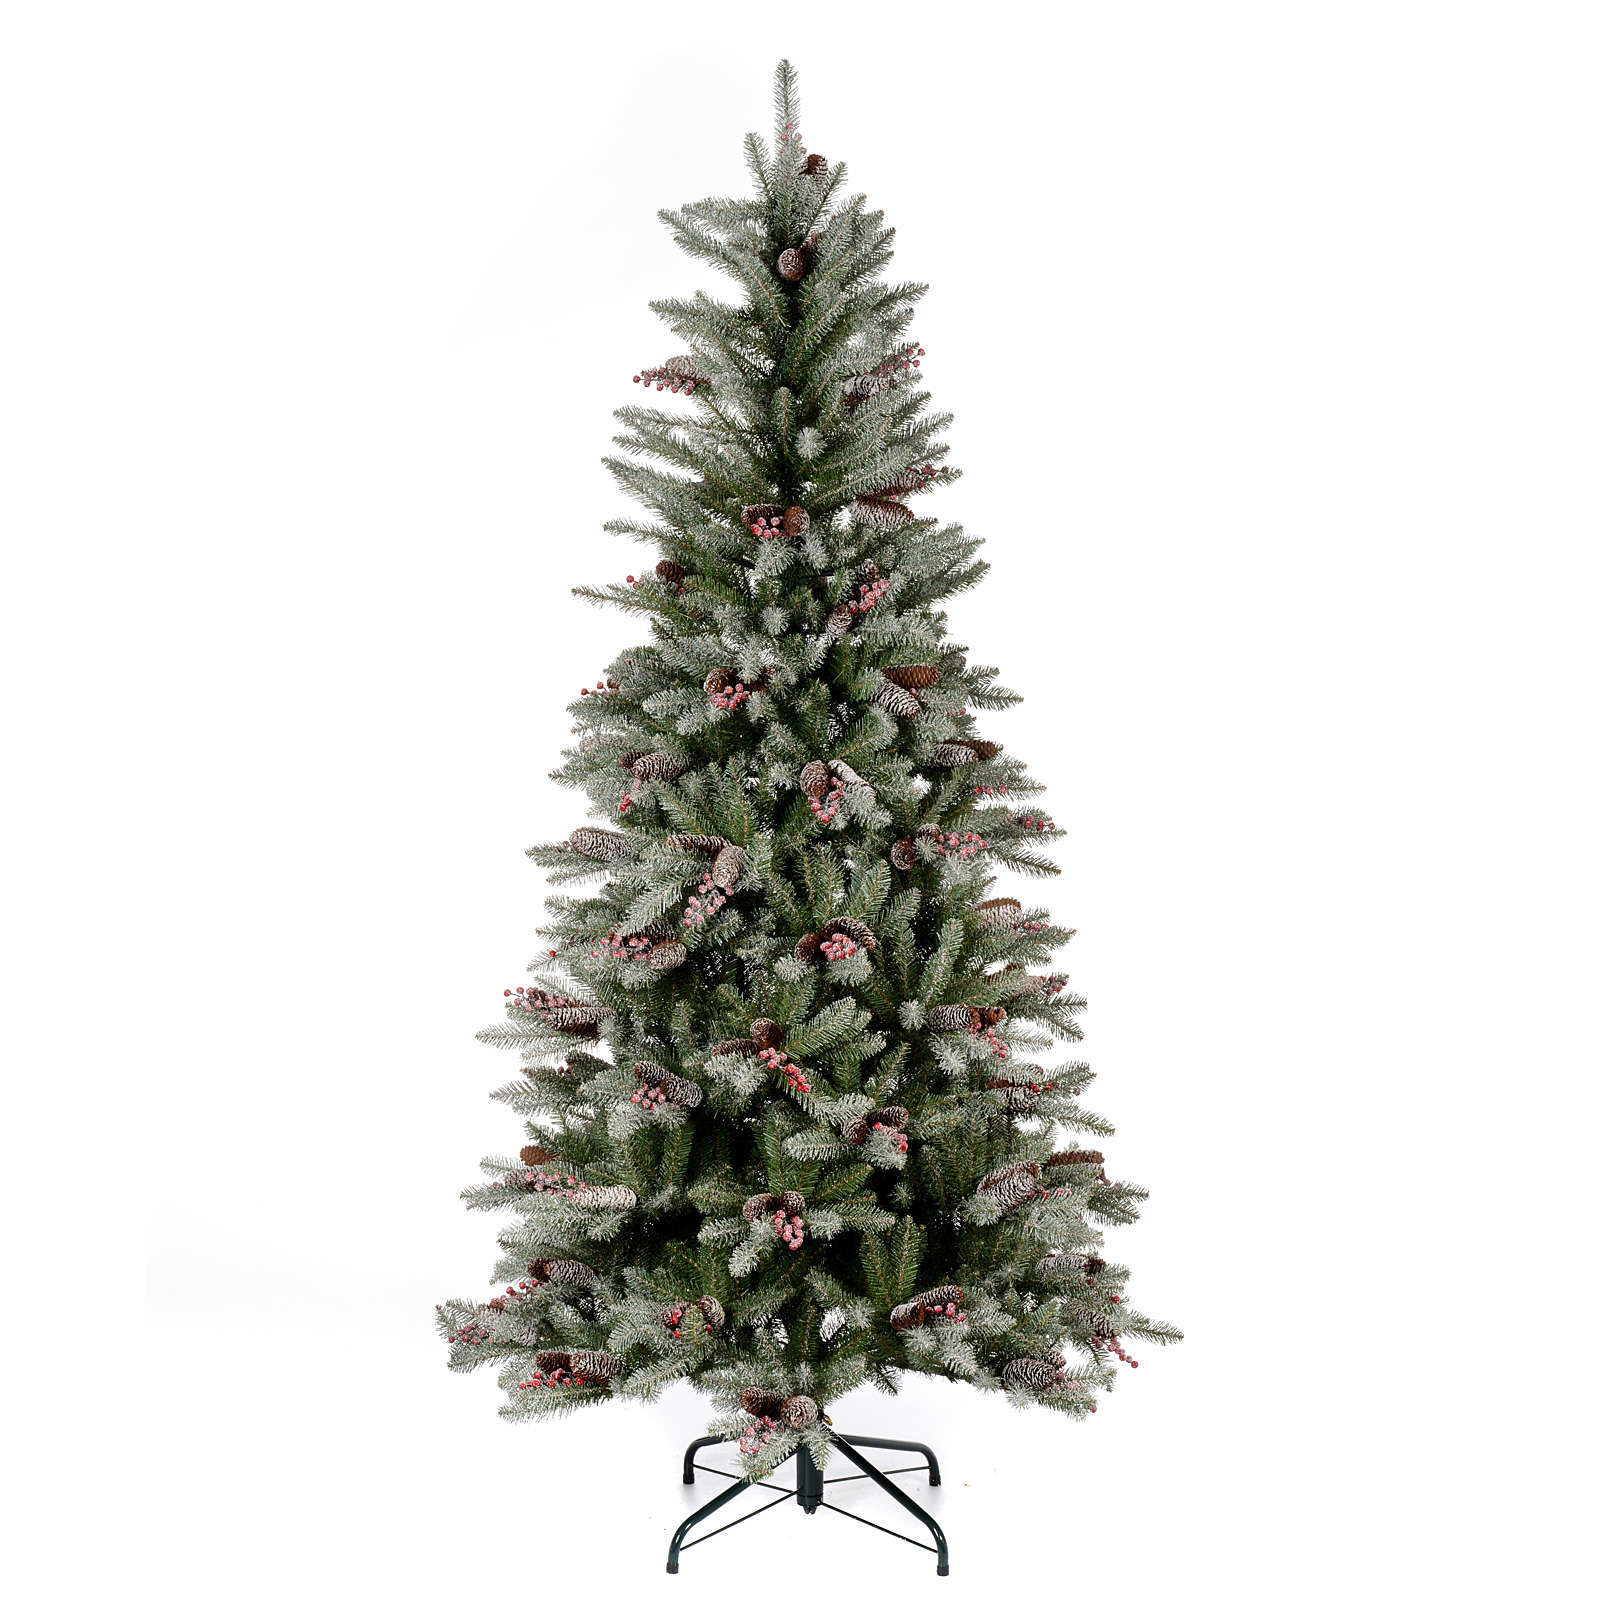 Christmas Tree With Pine Cones And Berries: Slim Christmas Tree 210 Cm, Flocked Dunhill With Pine